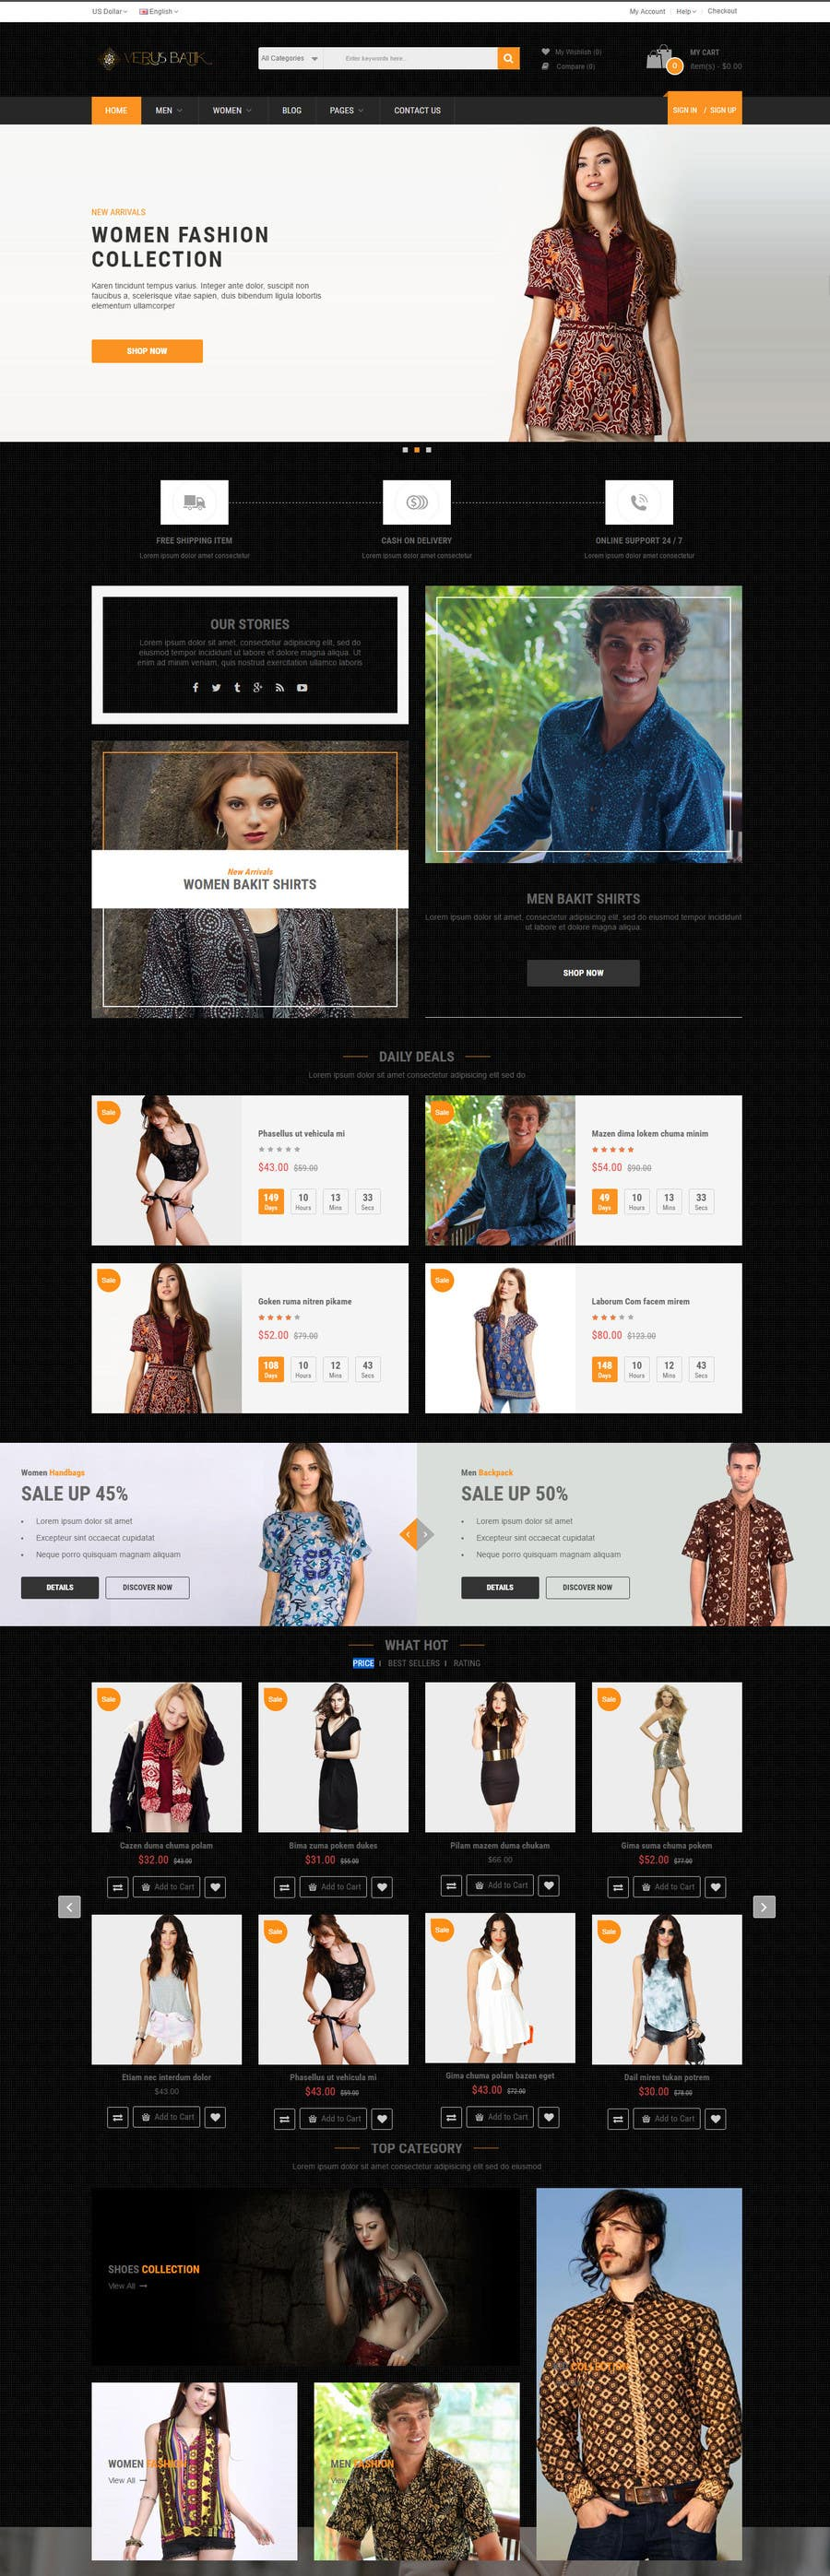 Create an online clothing store